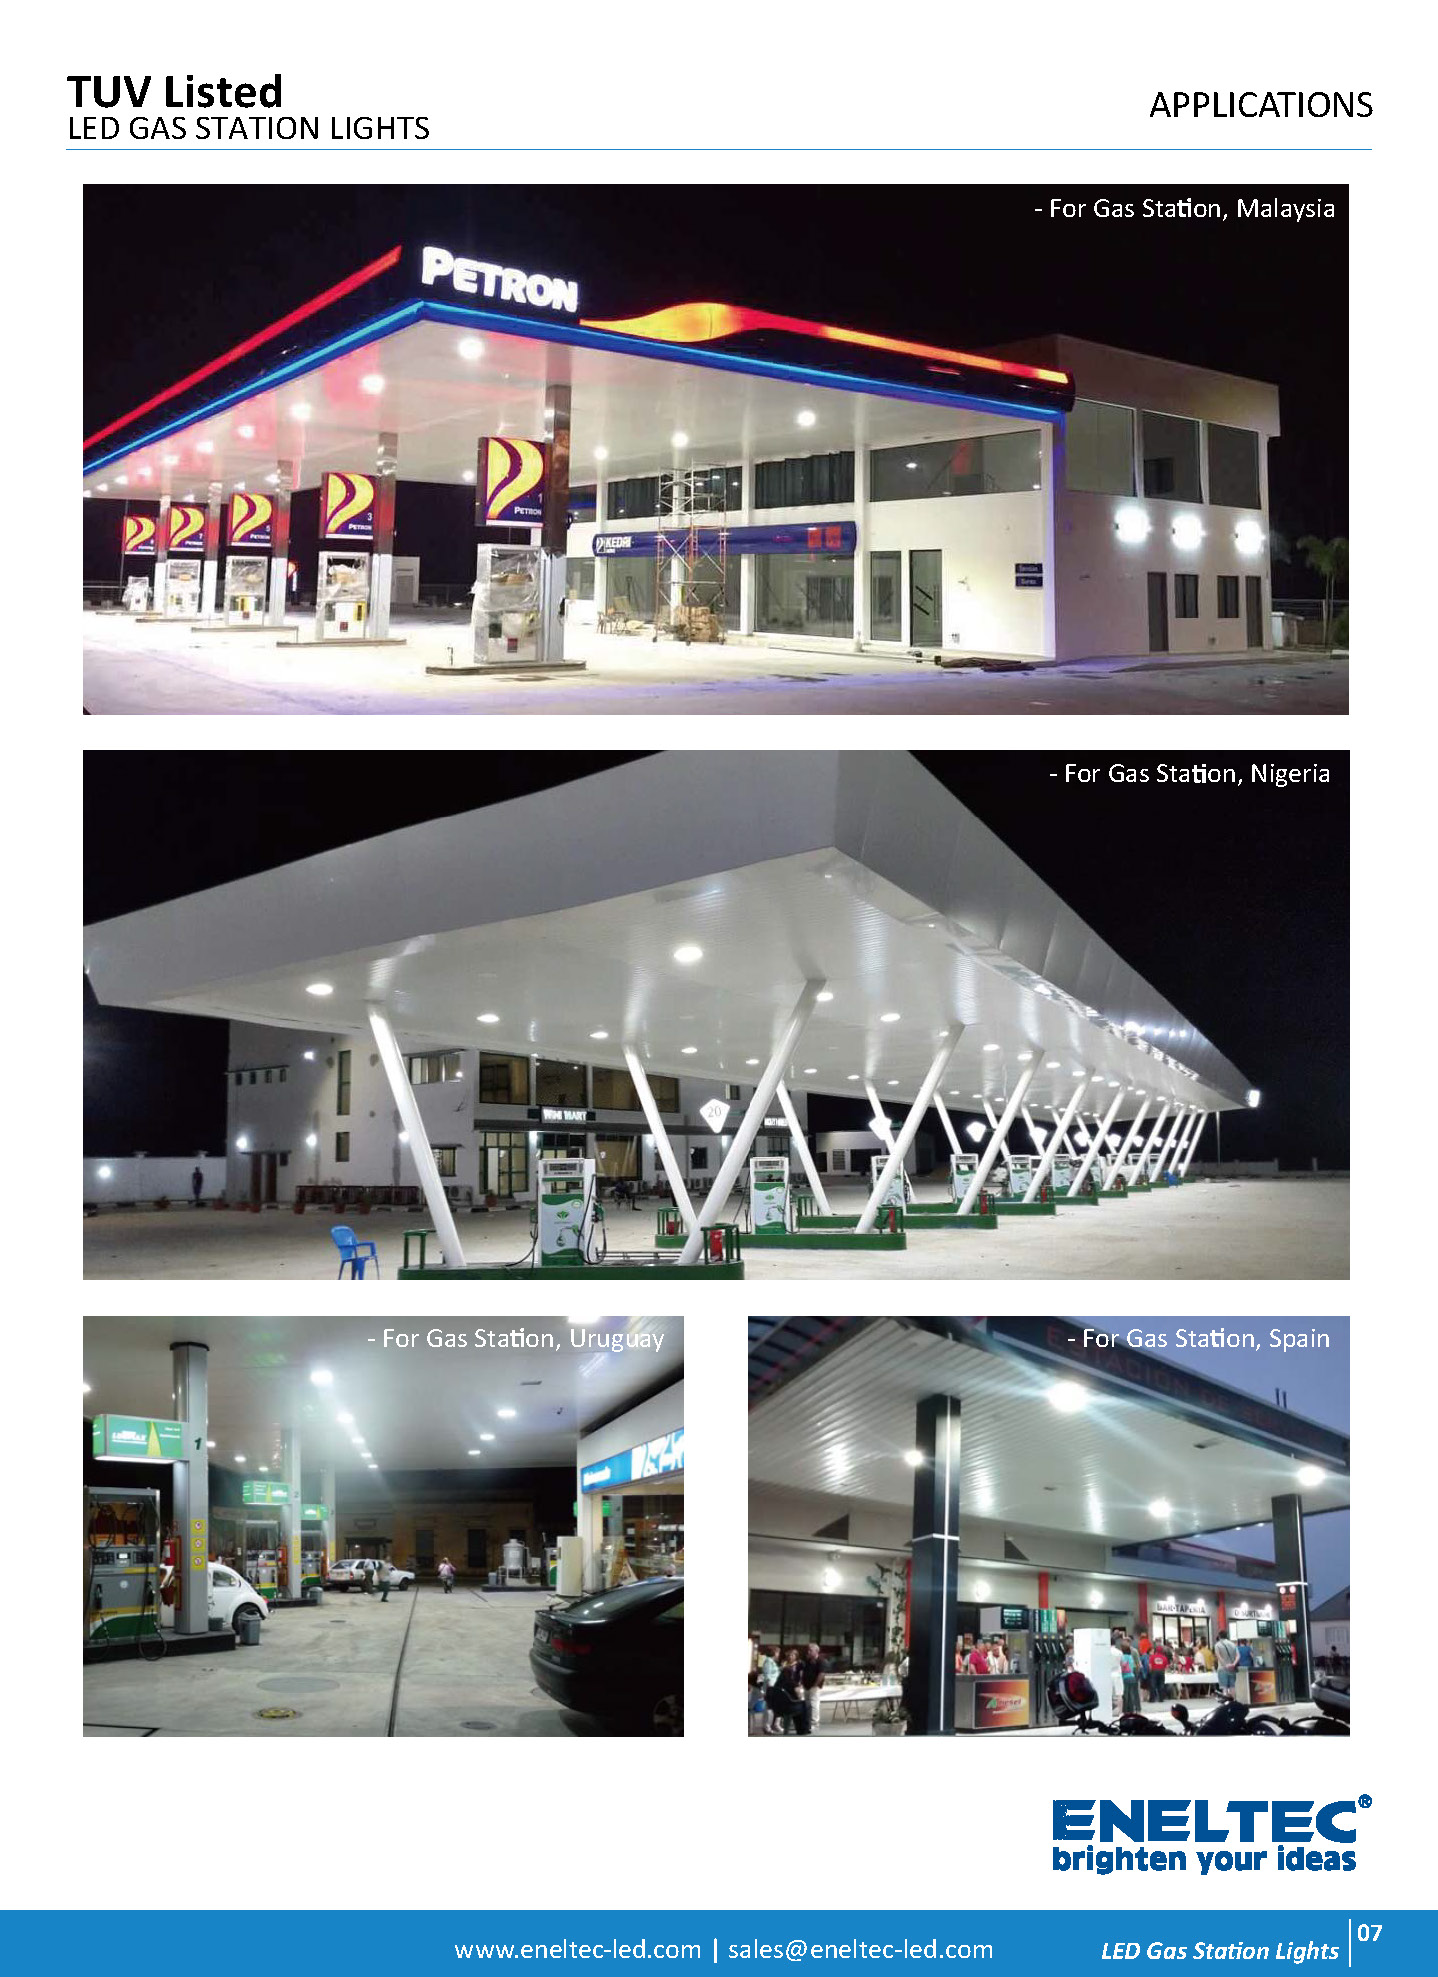 TUV Listed LED Gas Station Lights